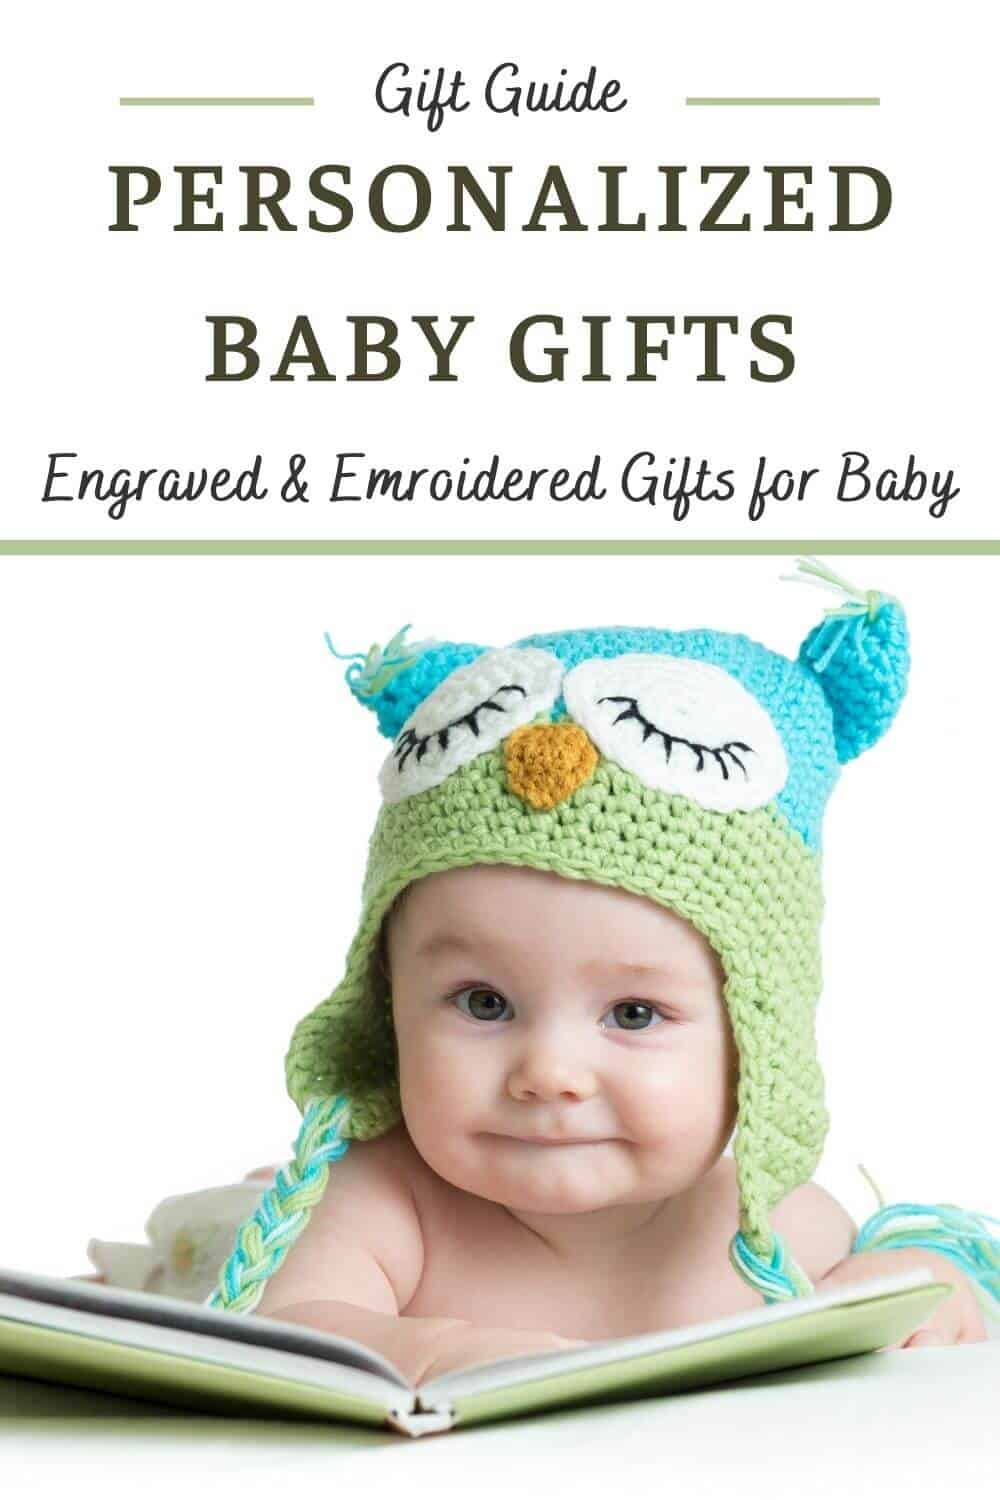 Personalized Baby Gifts - Unique Engraved and Embroidered Gifts for a Newborn Baby